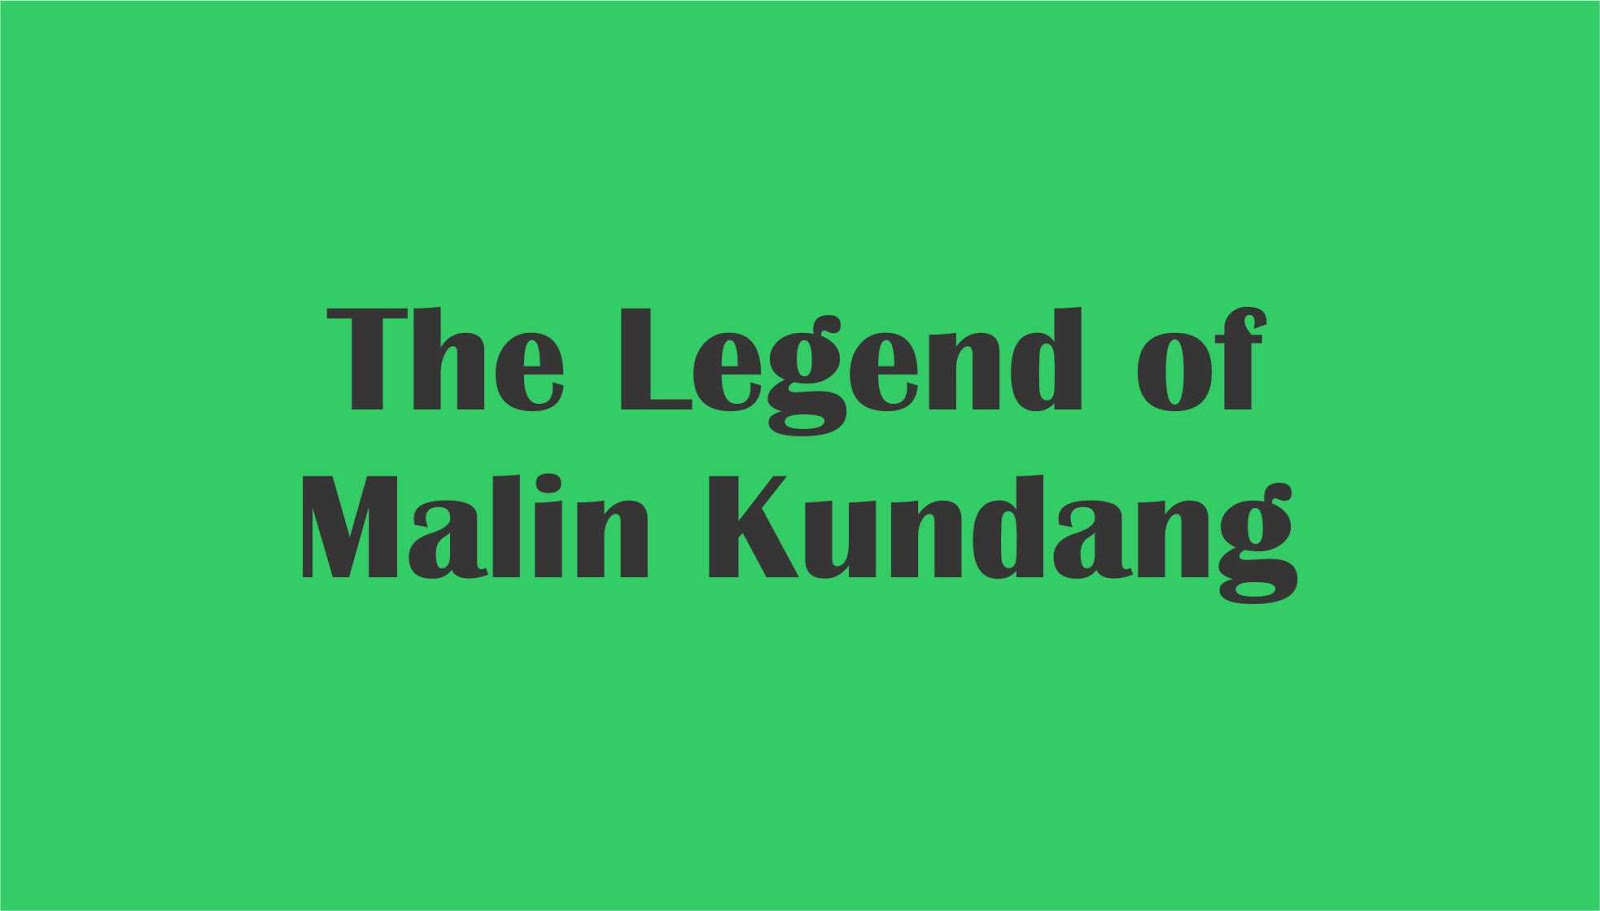 the legend of malin kundang essay Malin kundang story telling, hello how are you friends, this time i want to tell you about the legend of indonesian society, that is about malin kundang malin kundang story telling once upon a time, there lived a small family in the coastal areas of the island of sumatra.